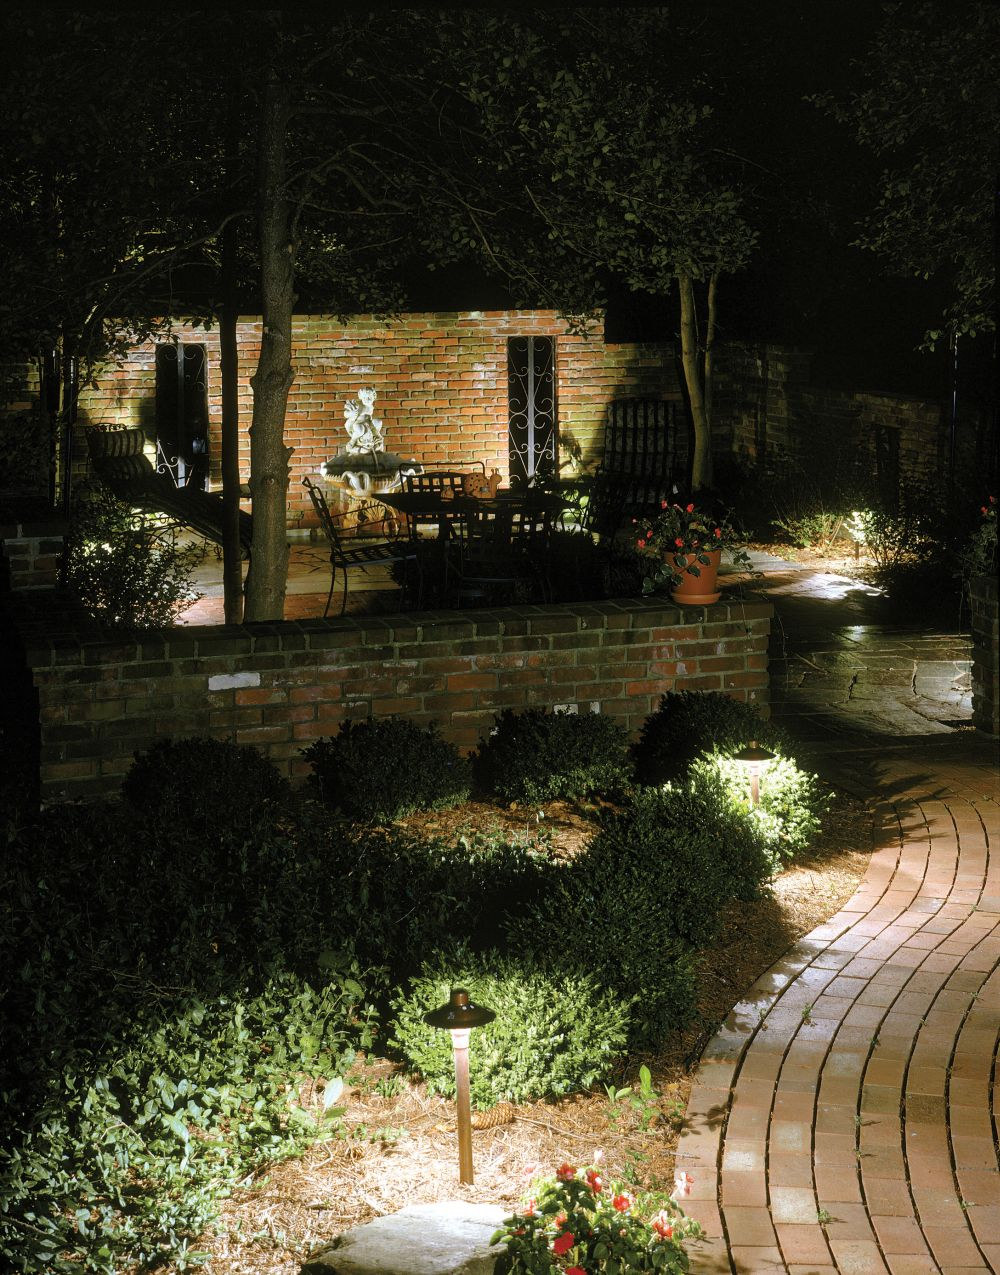 awsome look outdoor coach light in the garden brings comfort and calm atmosphere